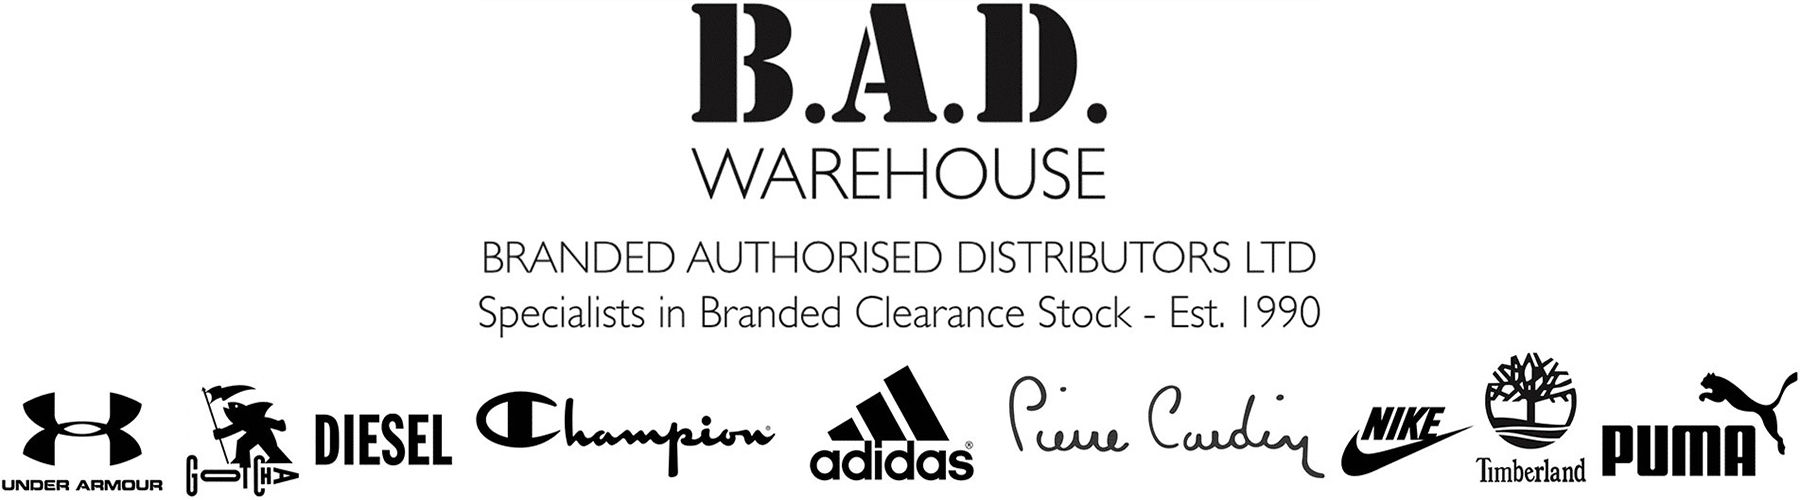 bad warehouse discount clothes factory outlet